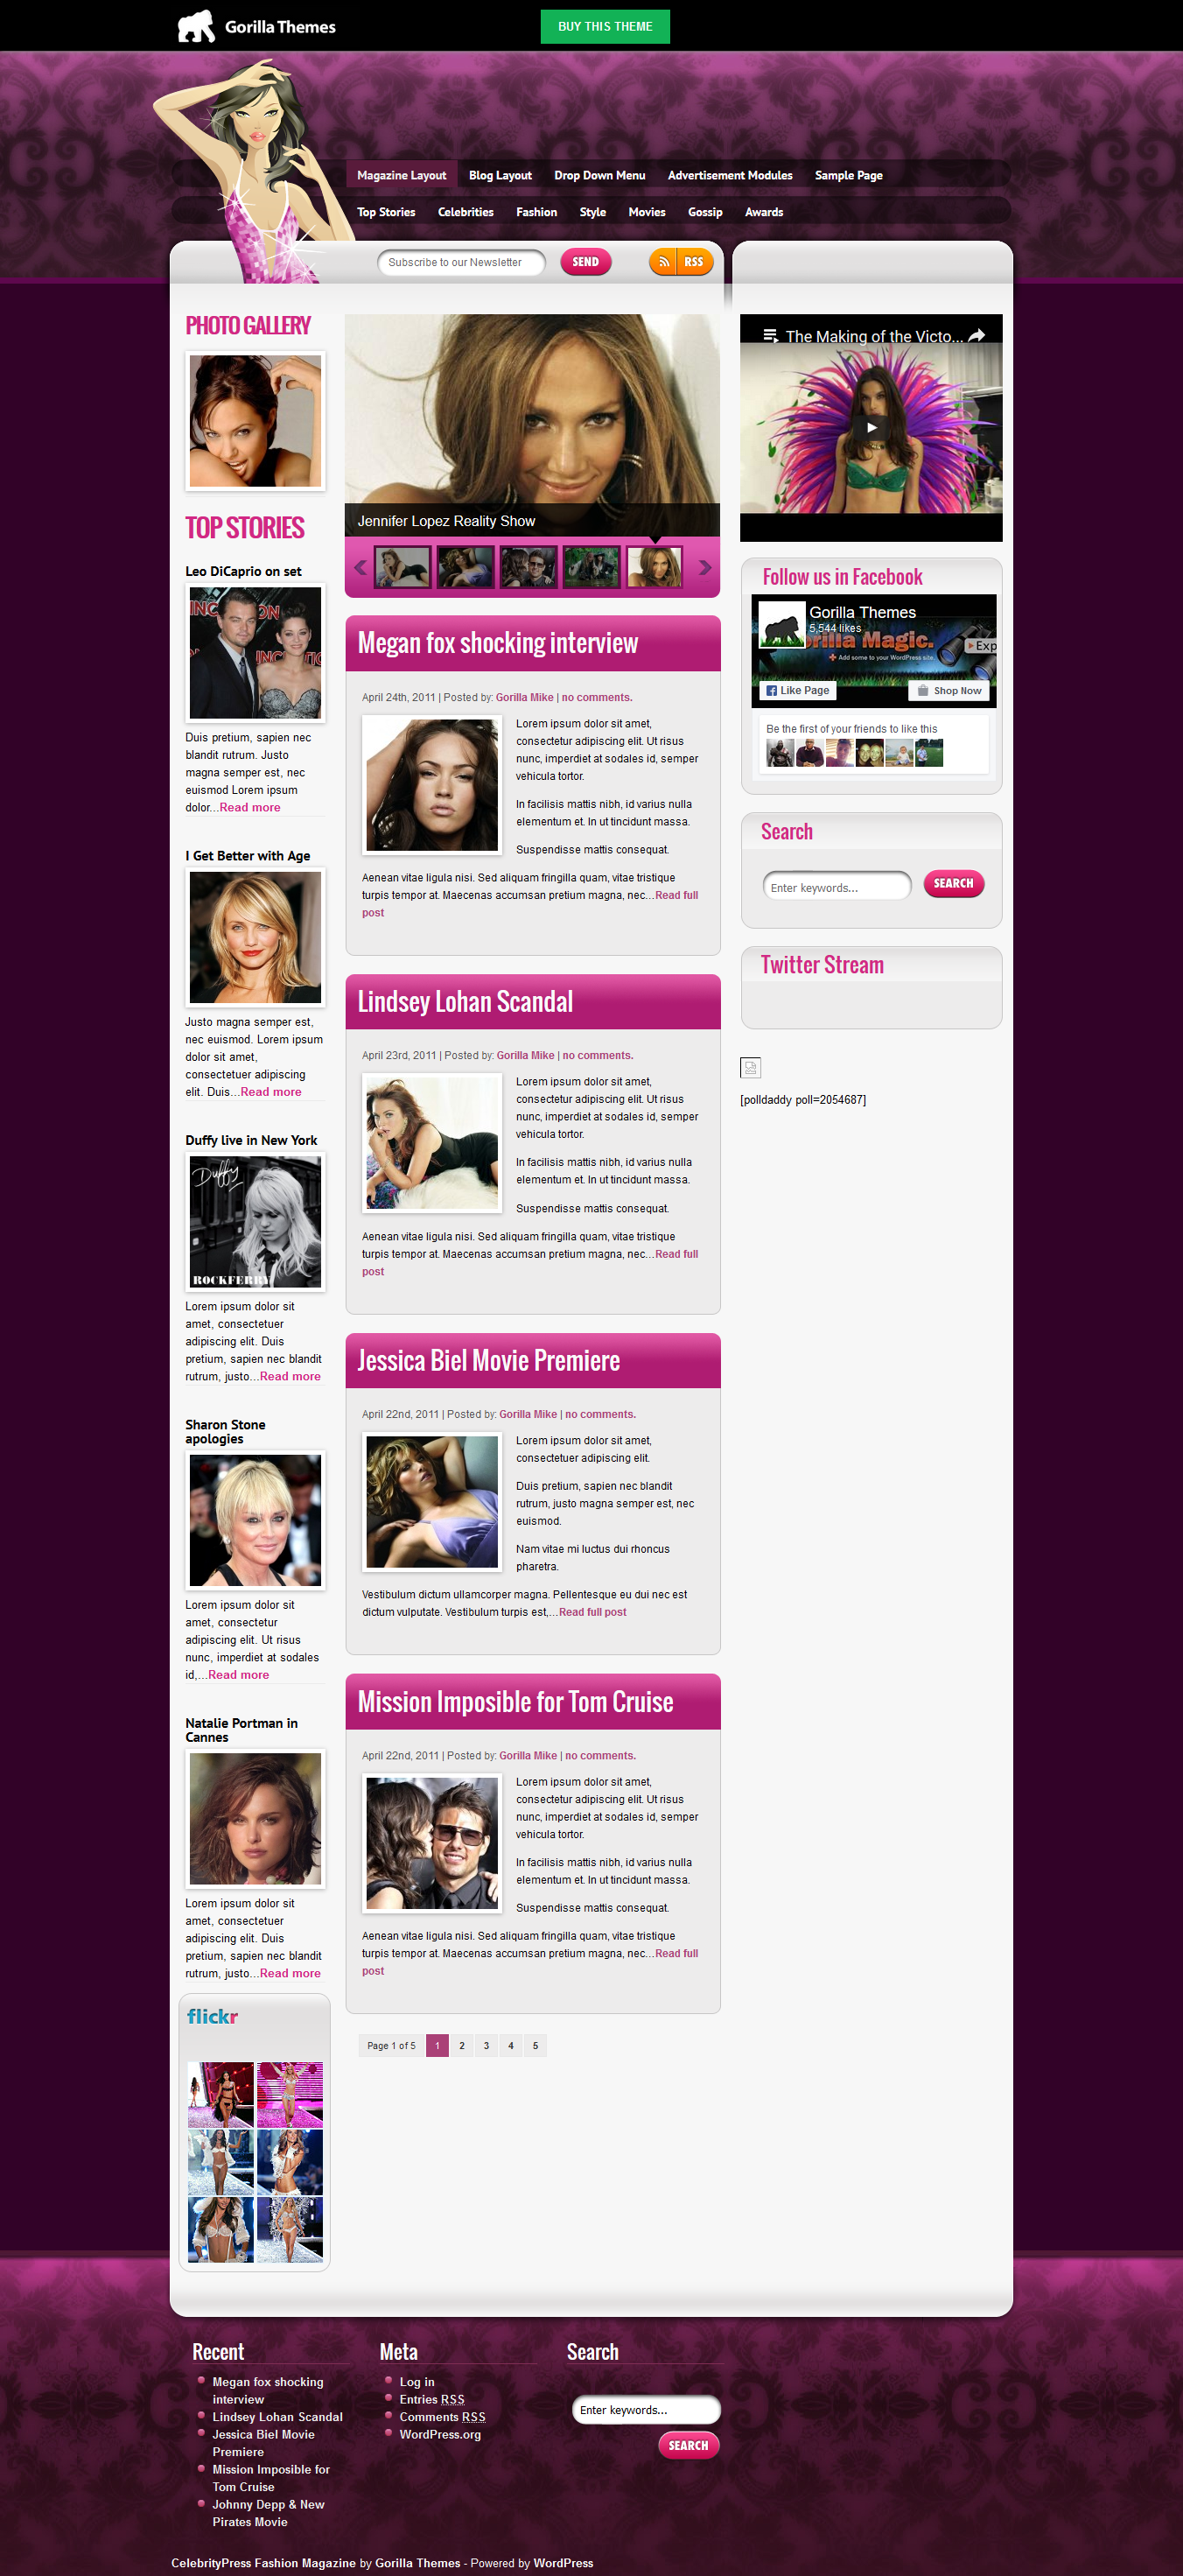 CelebrityPress theme